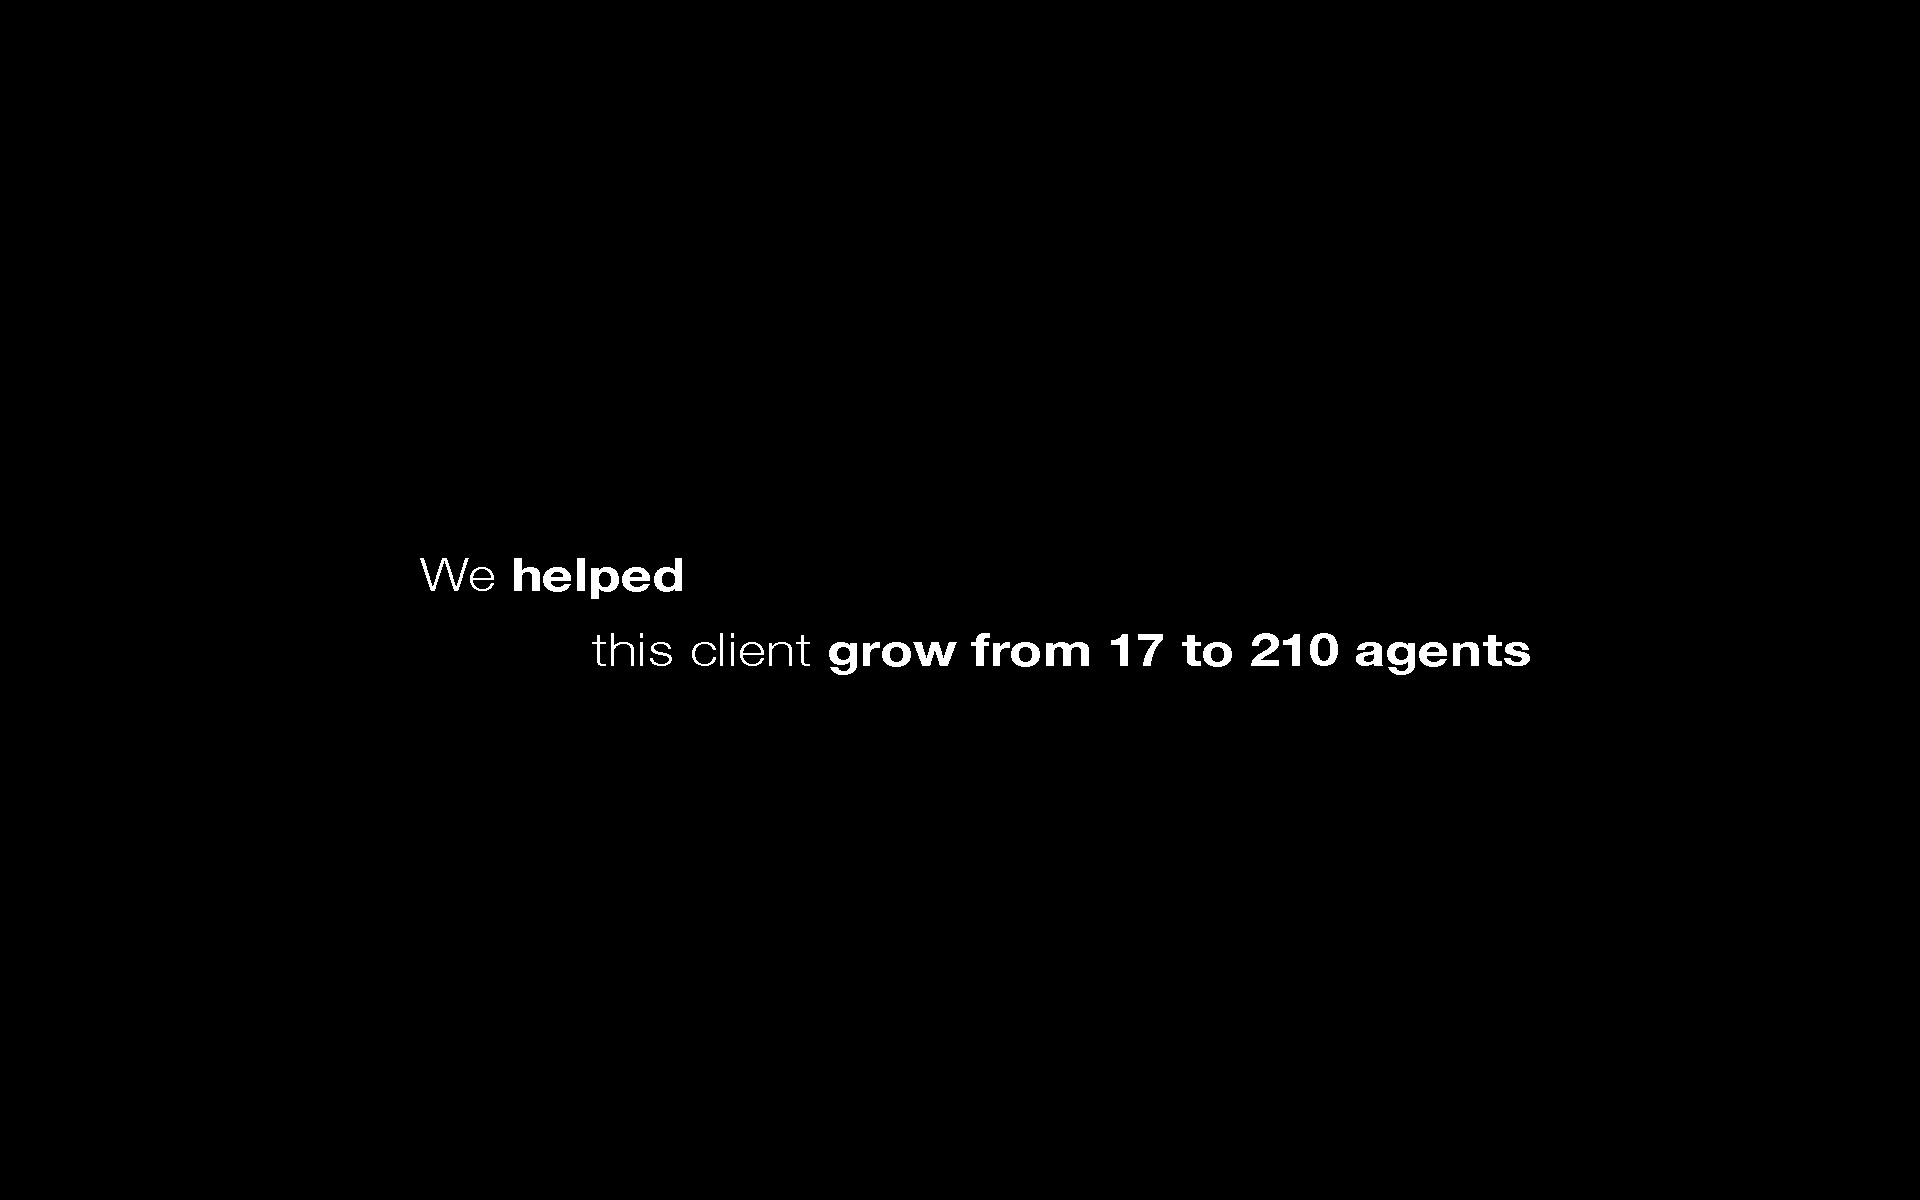 Web 17 to 210 agents.jpg